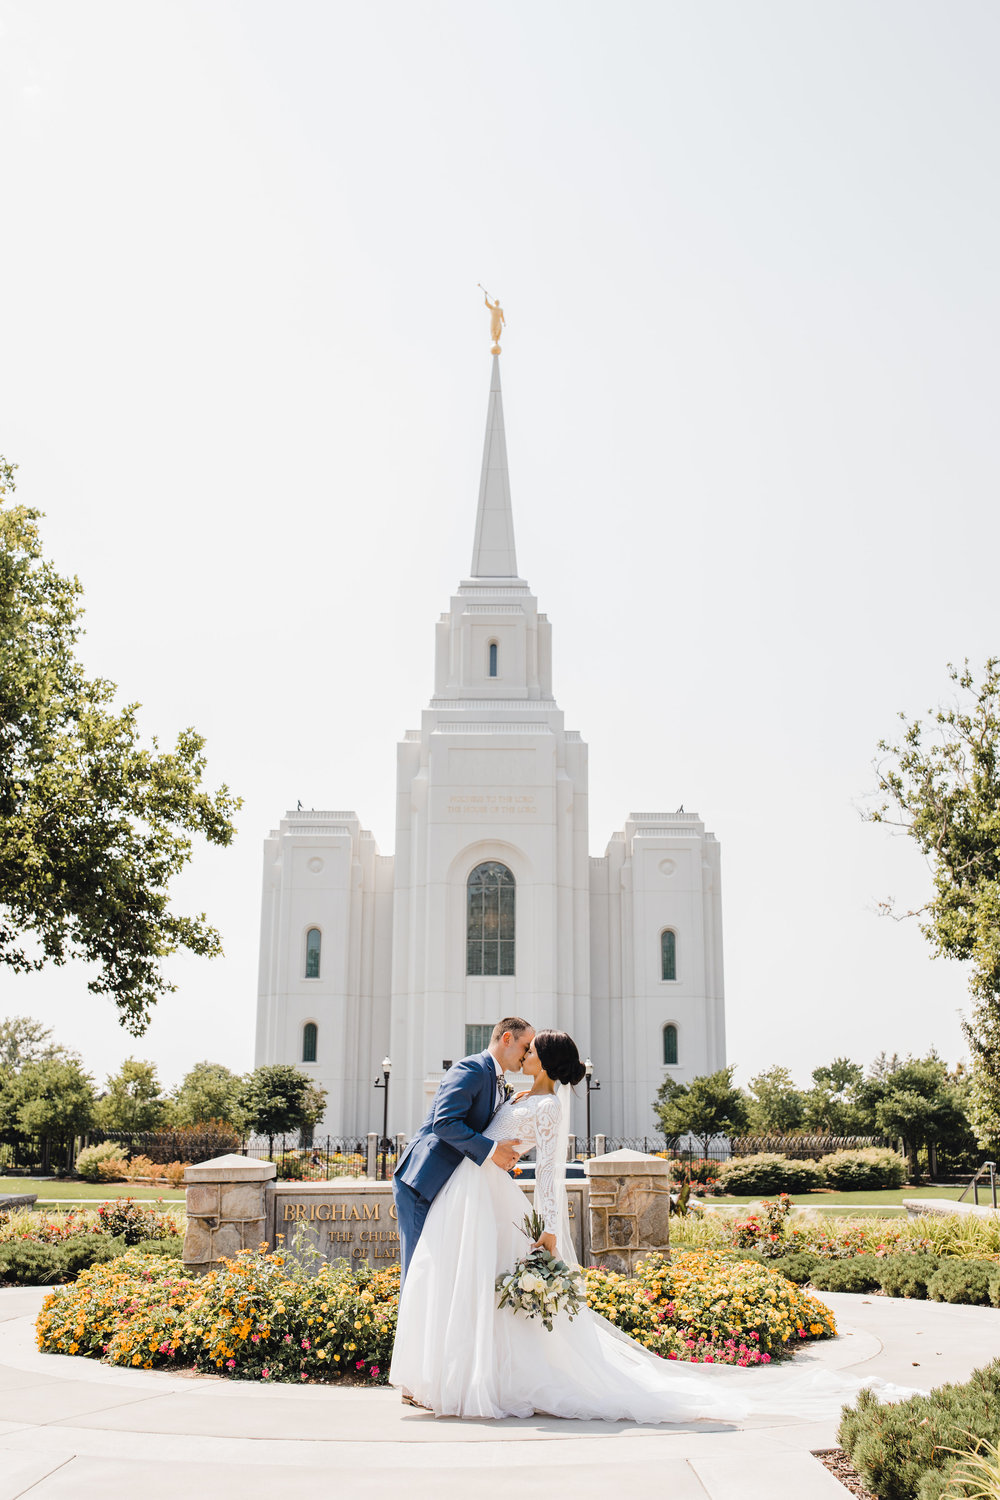 professional wedding photographer in brigham city utah lds temple dip kissing romantic